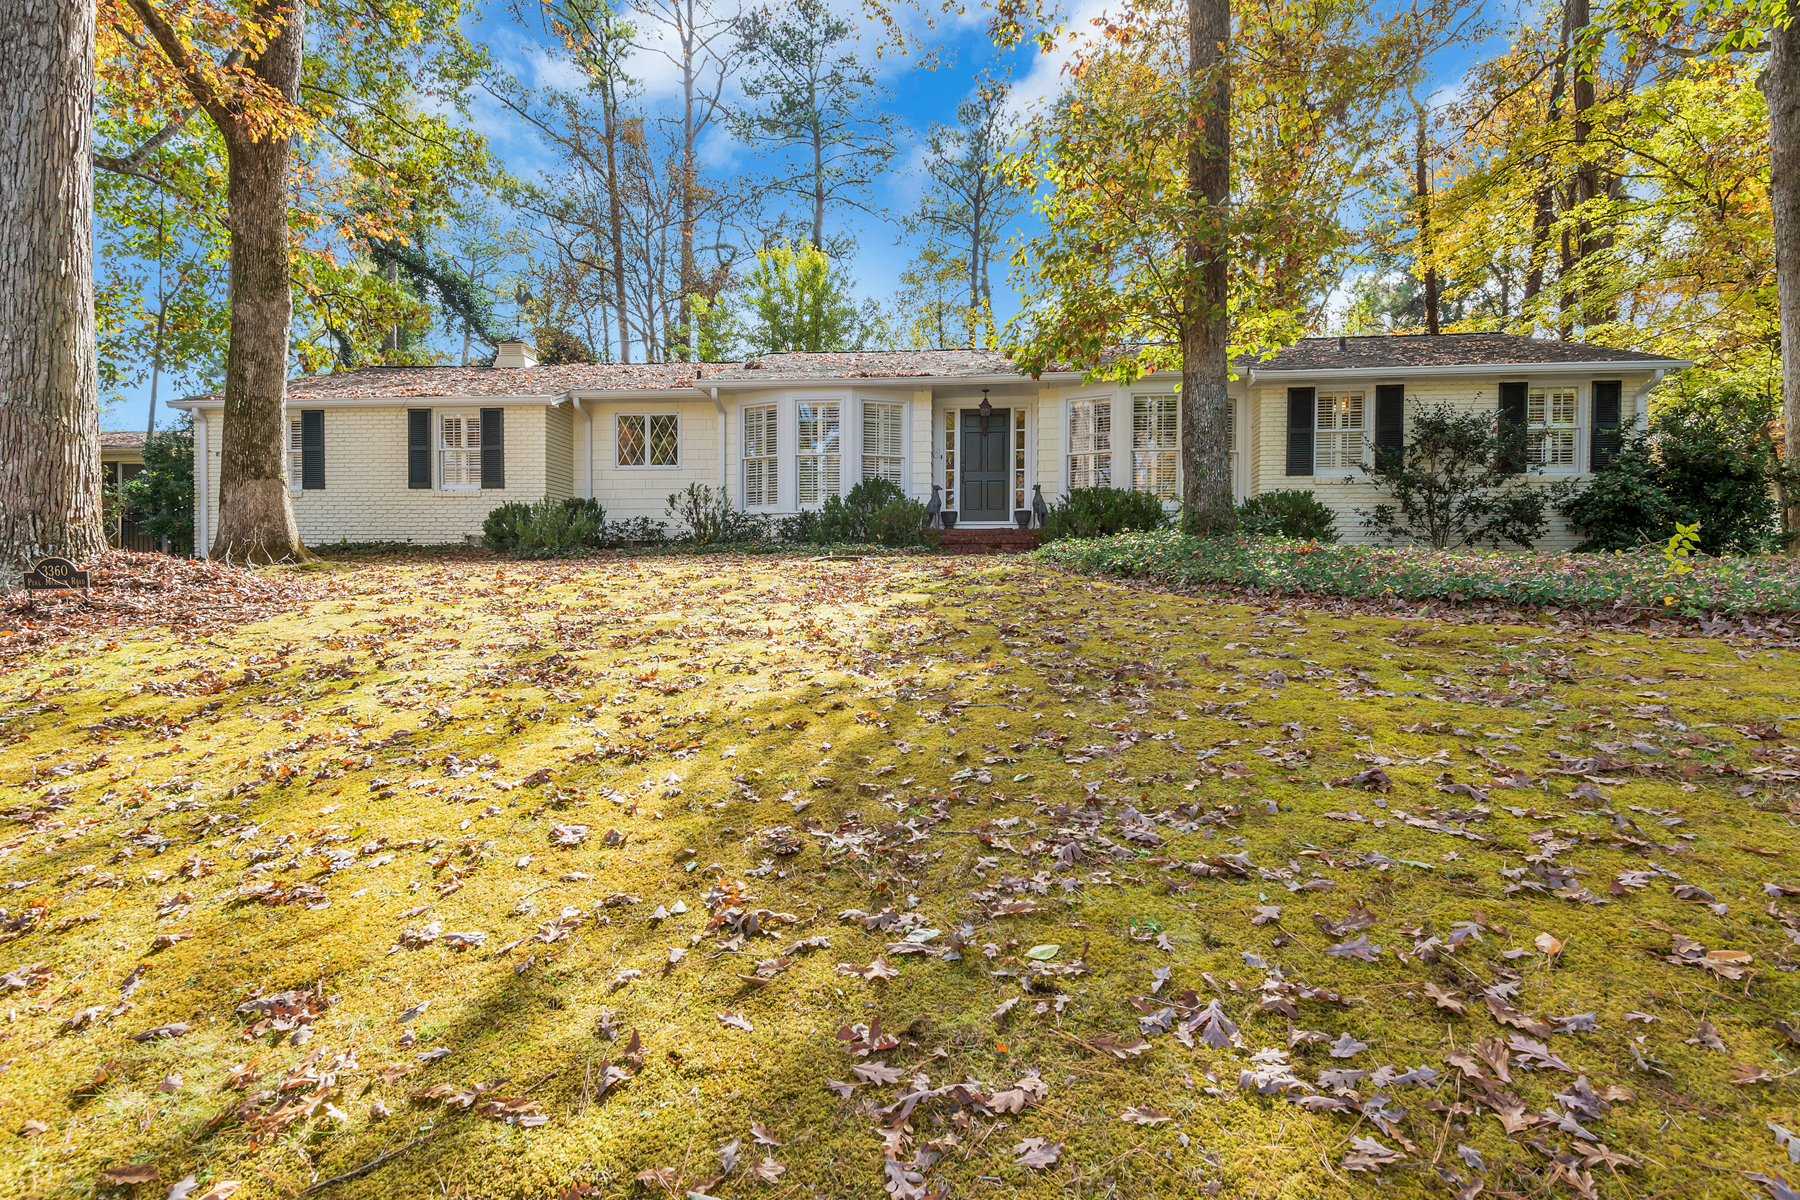 Single Family Home for Sale at Charming Updated Cottage Style Home With Great Cul-de-sac Location 3360 Pine Meadow Road NW Atlanta, Georgia 30327 United States